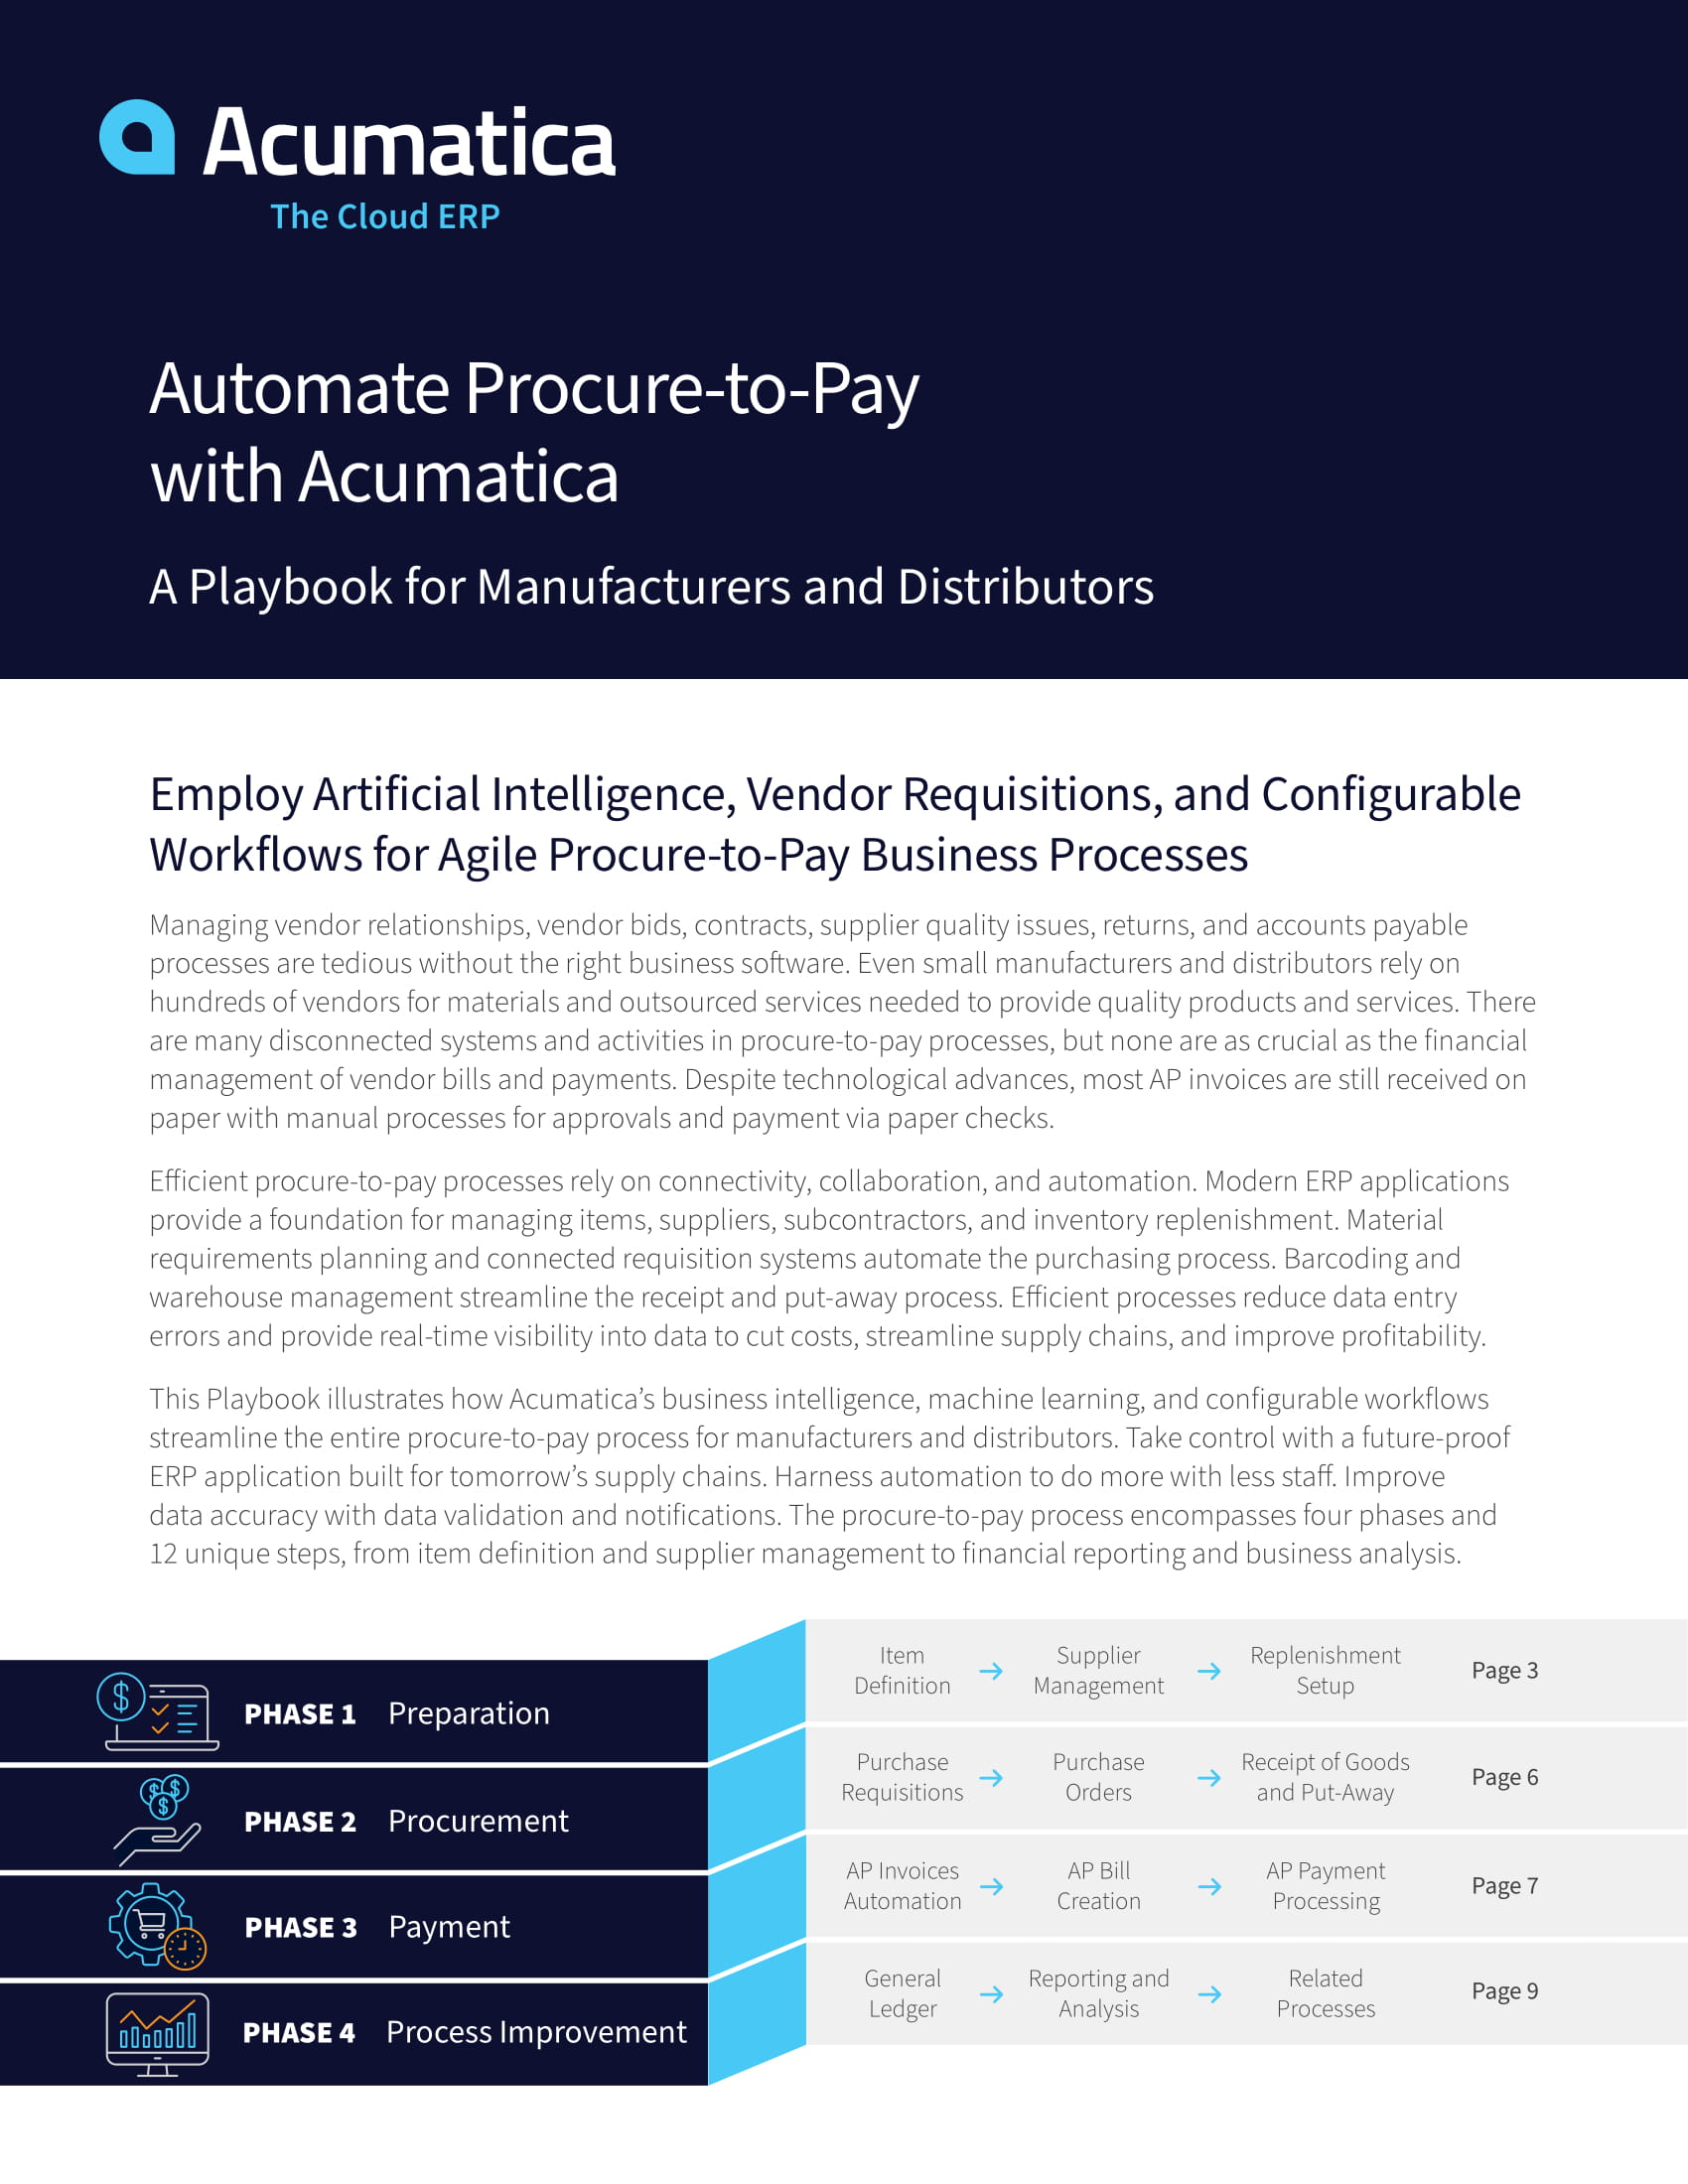 Using Cloud ERP for Procure-to-Pay Automation